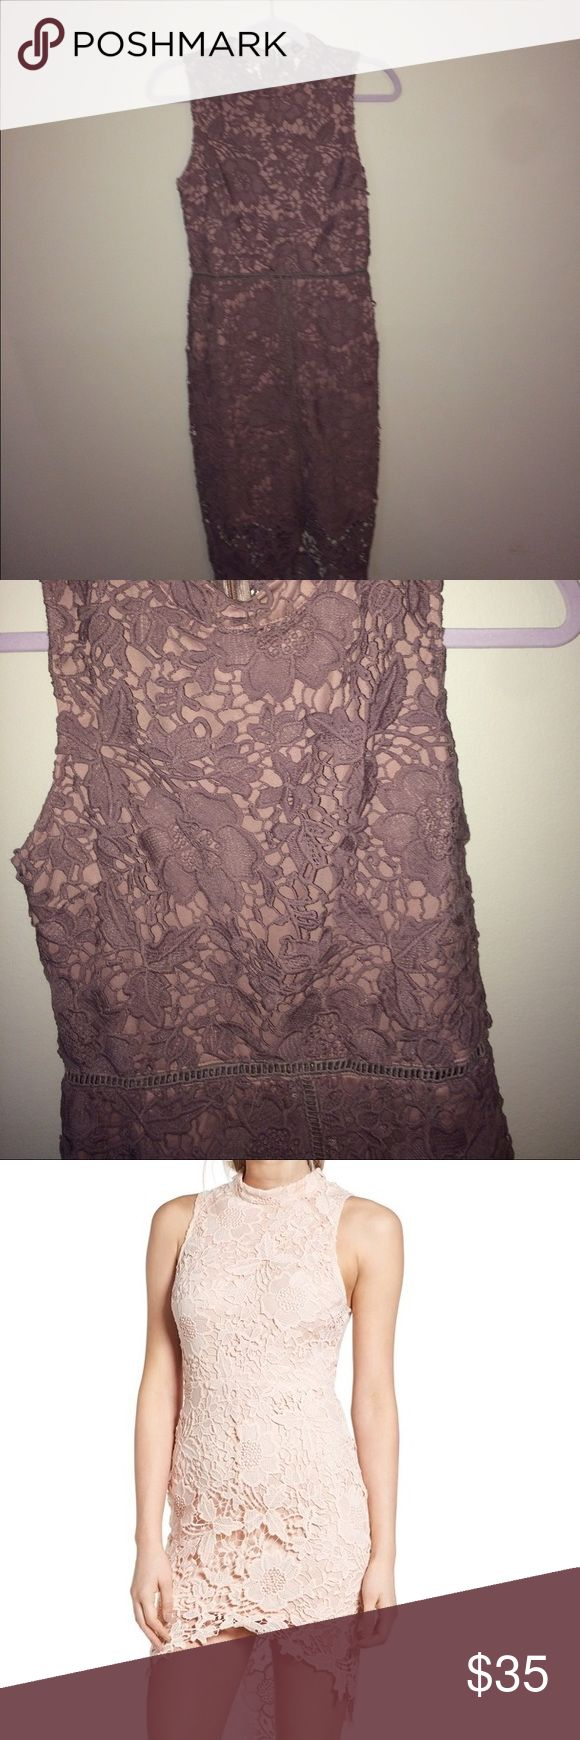 Beautiful Lace Bodycon Mauve lace bodycon dress. Size medium. Worn once, perfect condition. Tag says Ina, however it looks exactly like Astr brand Samantha dress. Pics 1 and 2 are the actual dress. Pics 3 and 4 are the Astr dress because that's how the dress looks on. Ina Dresses Mini